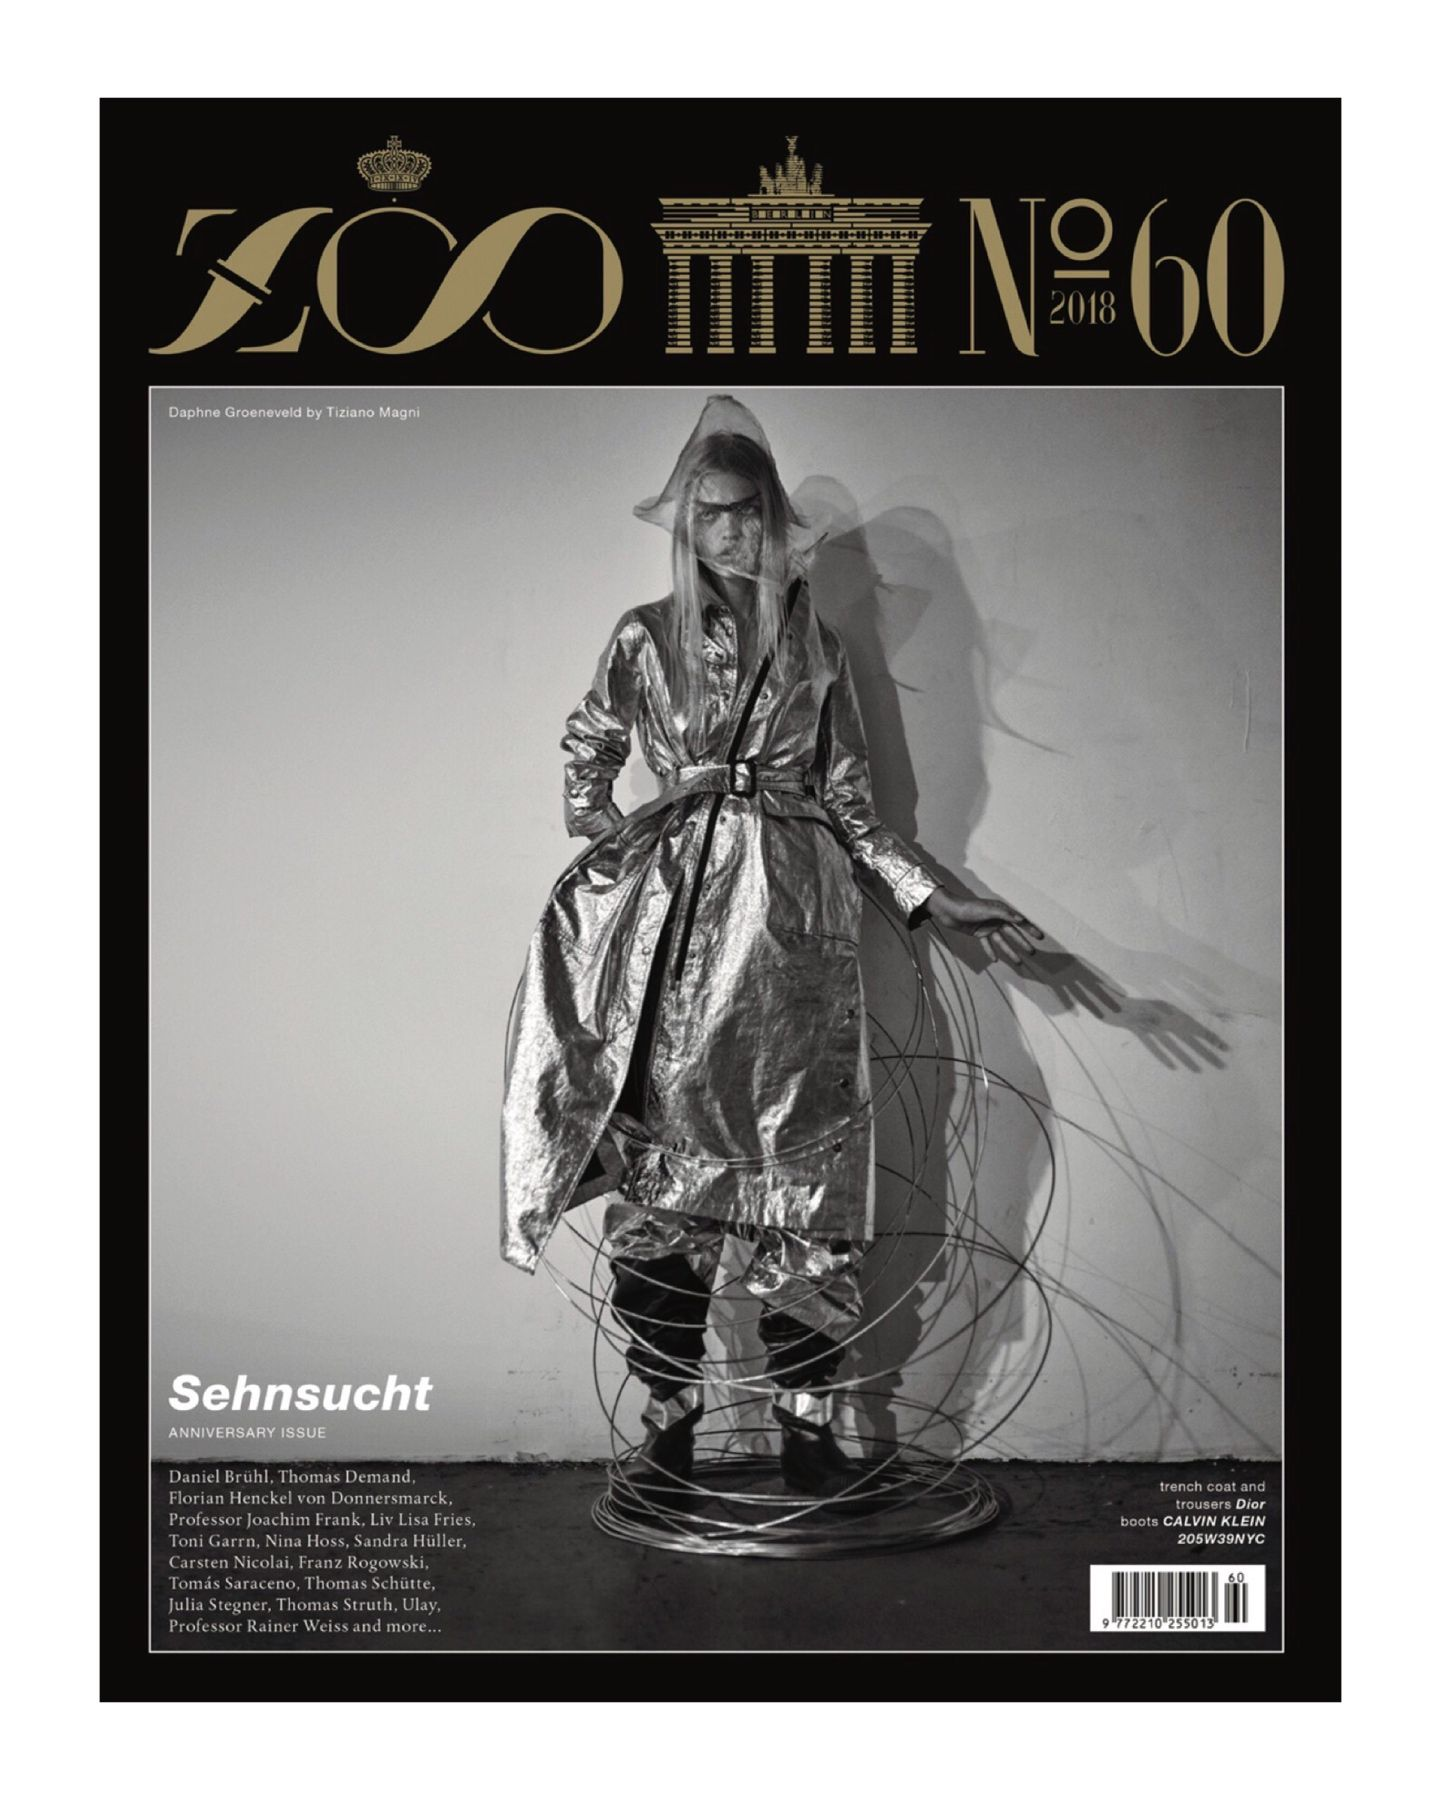 Zoo Magazine Anniversary issue 60 Photographed by Tiziano Magni 〰 Geist Ballet, a story inspired by the works of German painter, sculptor, designer and choreographer Oskar Schlemmer | Photography @Tizianomagni | For @zoomagazine | Model @daphnegroeneveld | Wearing @irisvanherpen | Makeup @therealistdotti | Styling @joannesblades | Hair @robeauhair | Post @velem @milk | #zoomagazineanniversaryissue60 #oskarschlemmer #dior #irisvanherpen